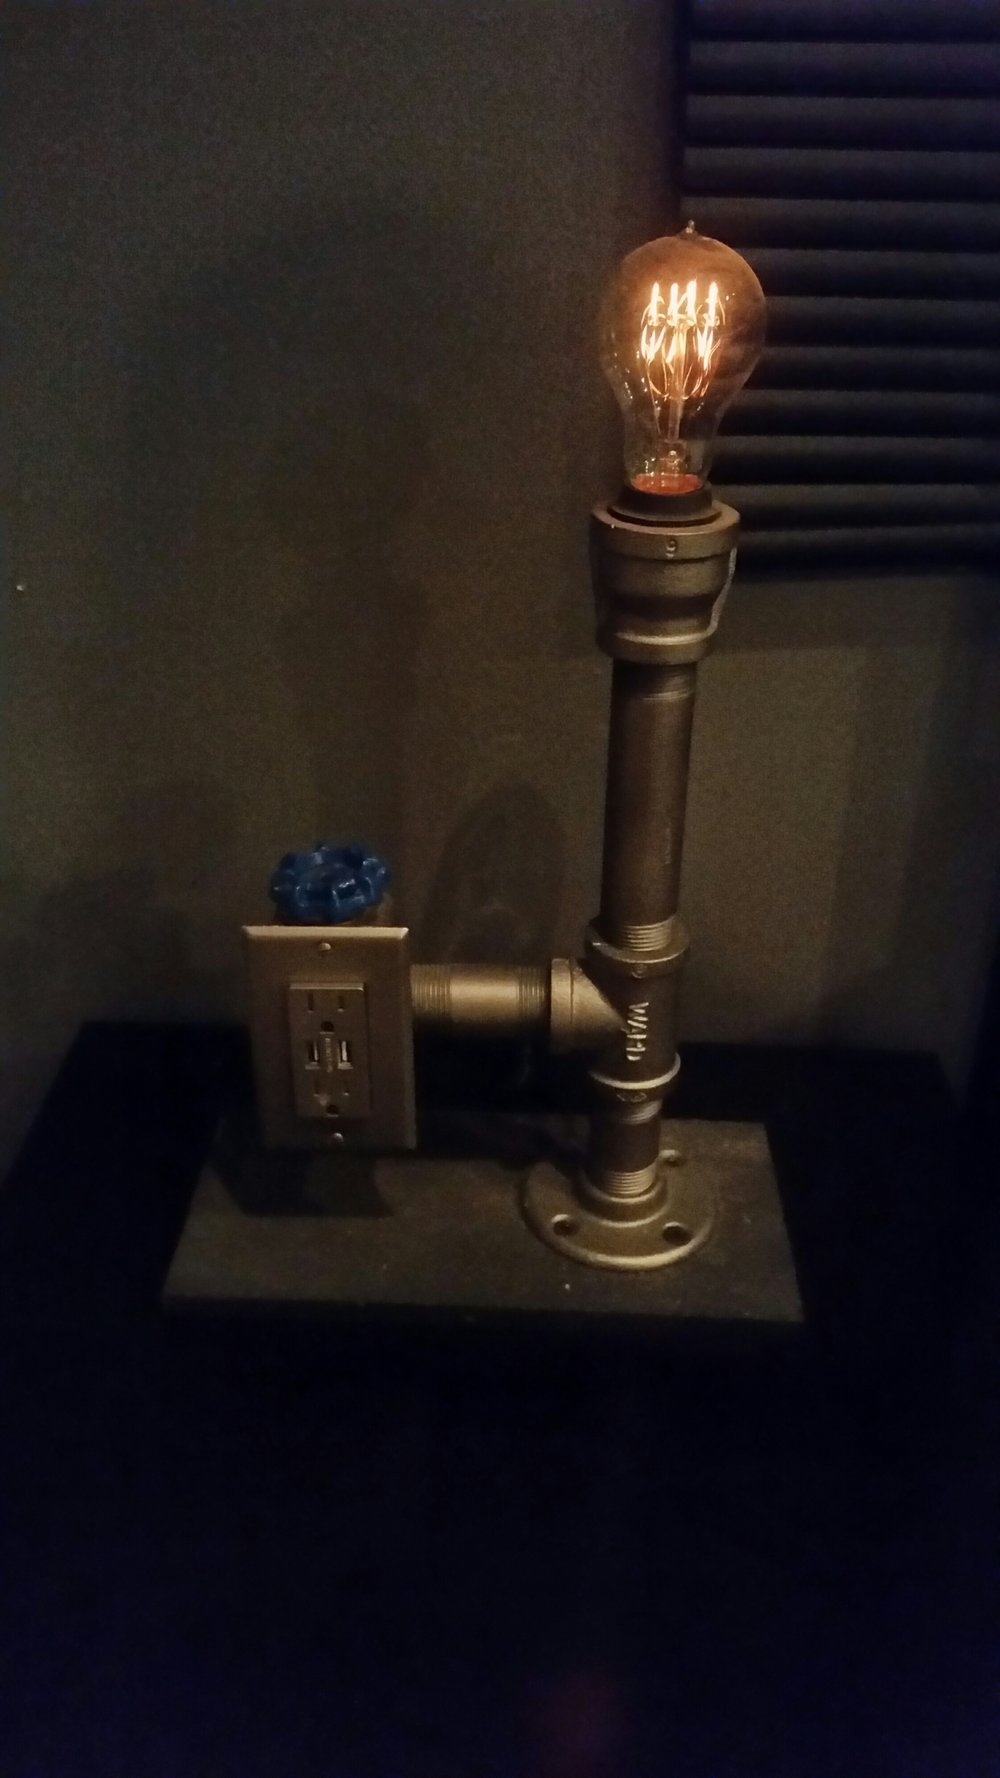 Pipe lamp with Edison bulb and garden faucet as switch/dimmer.